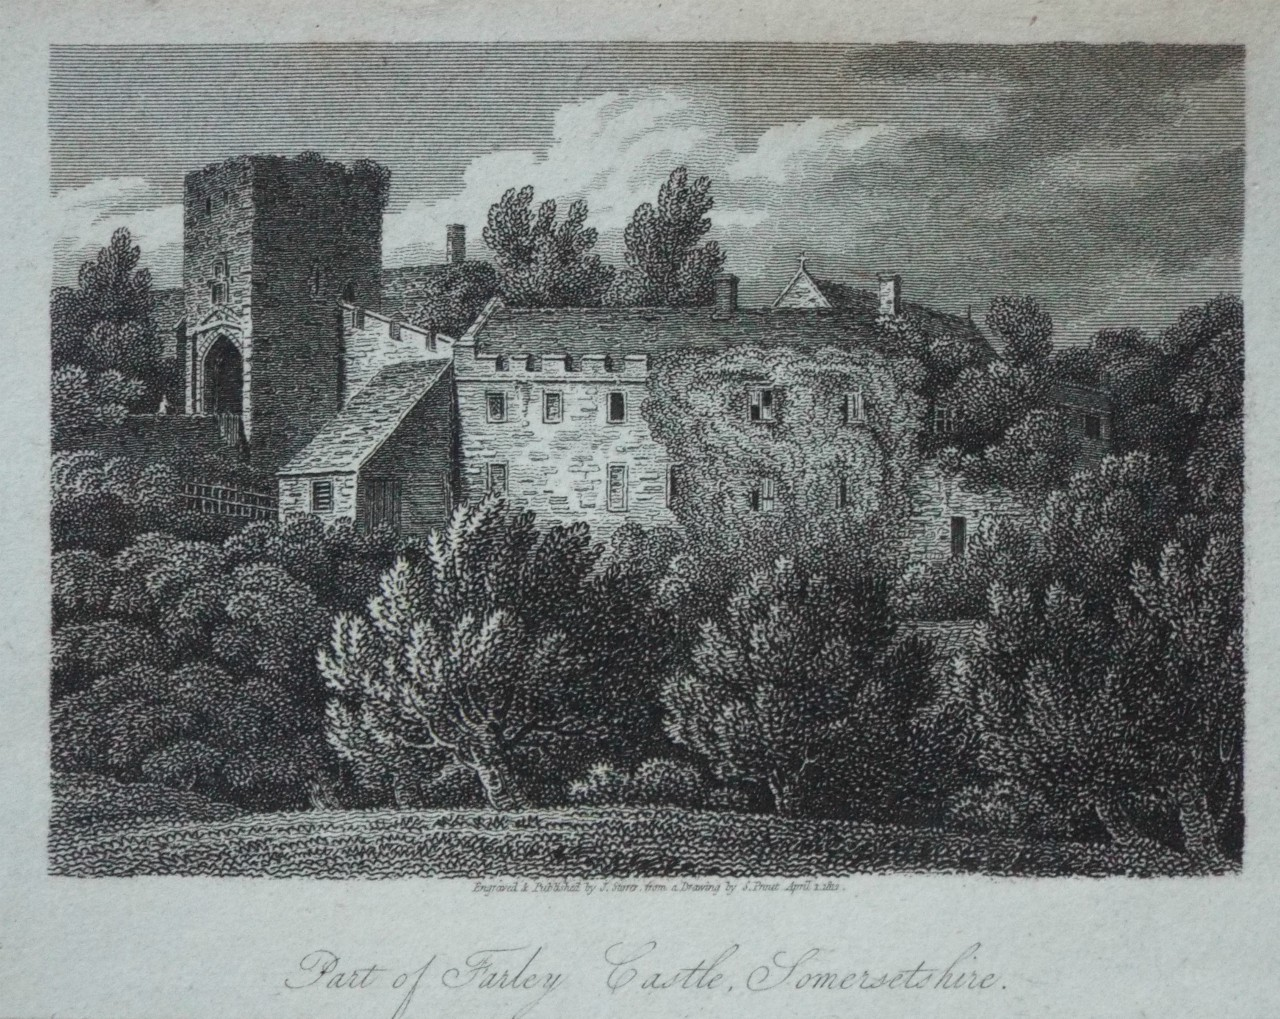 Print - Part of Farley Castle, Somersetshire.